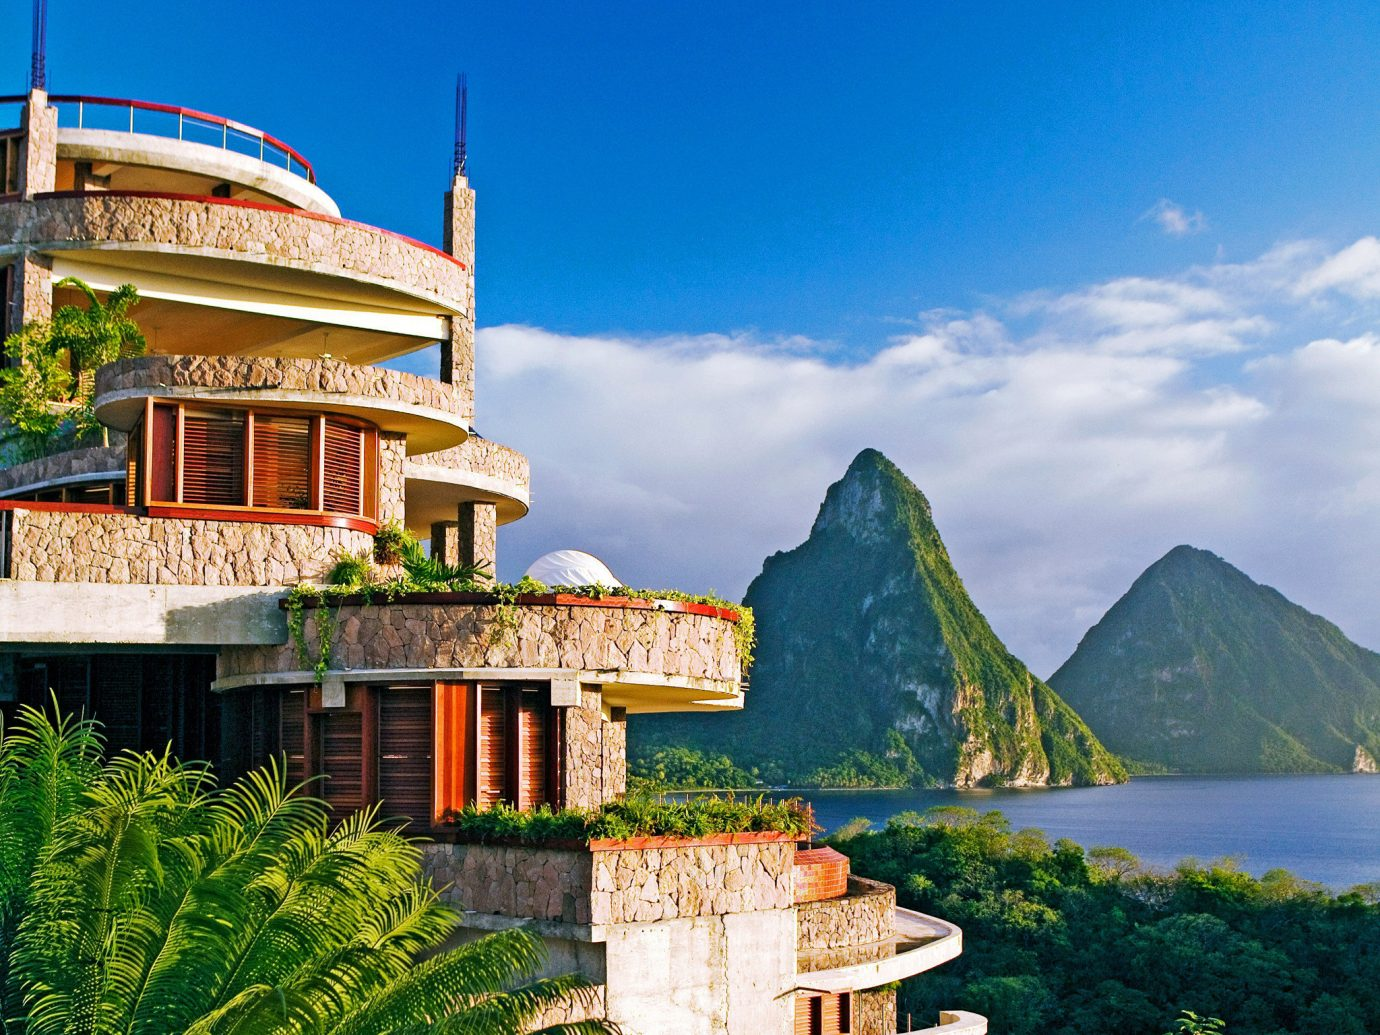 Buildings Exterior Hotels Island Luxury Luxury Travel Outdoors Romance Scenic views Trip Ideas sky outdoor landmark Town building vacation house tourism estate Village monastery Resort cityscape travel palace place of worship